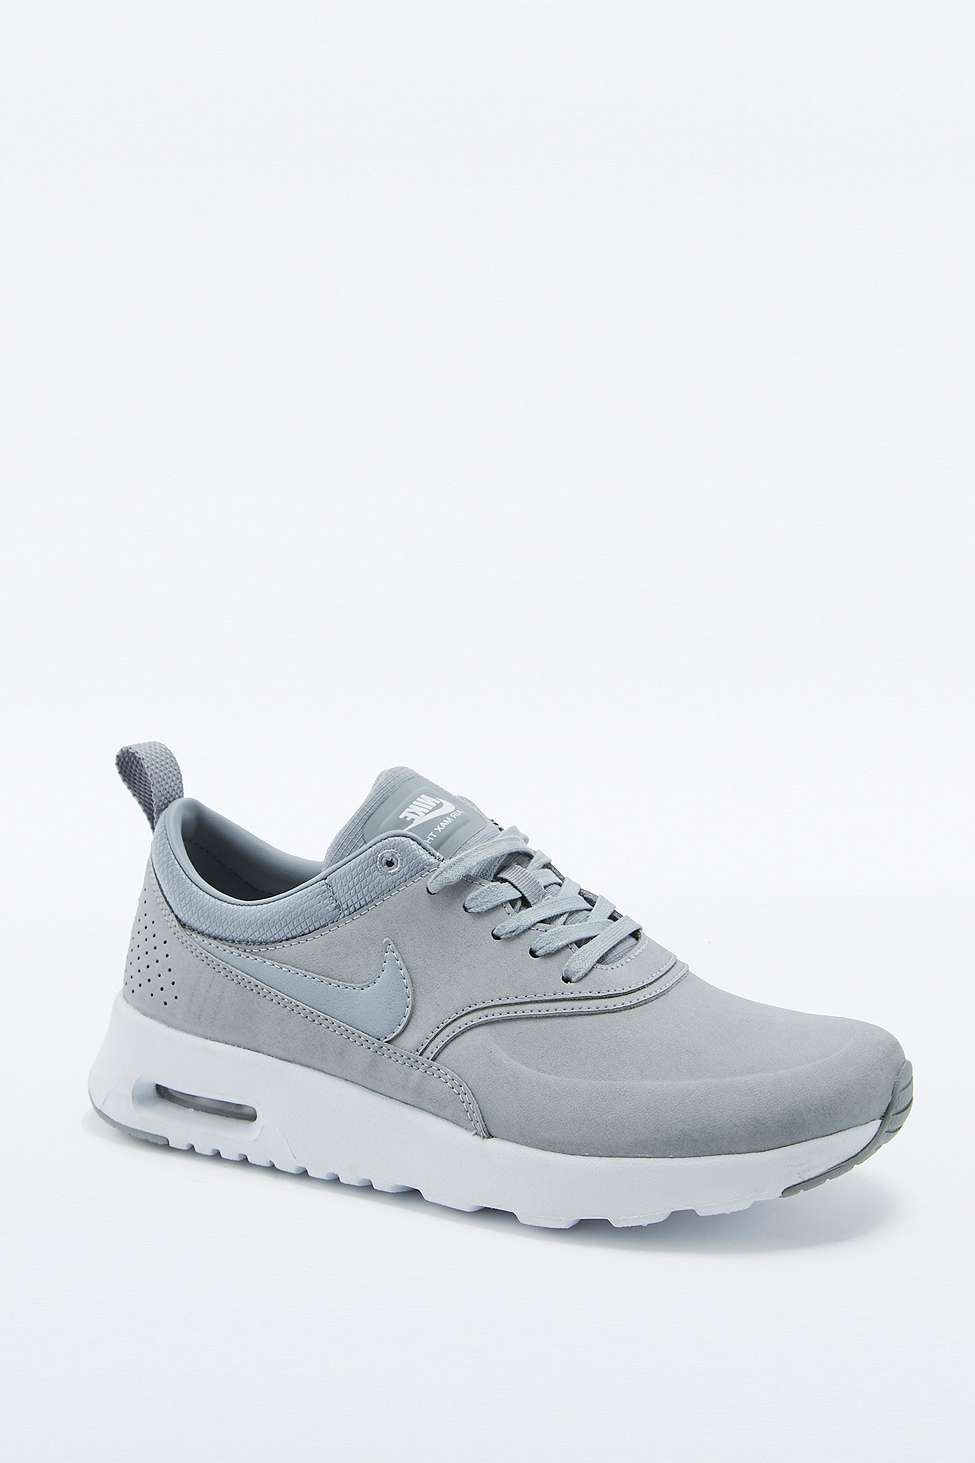 nike air max thea black and white women's spectator